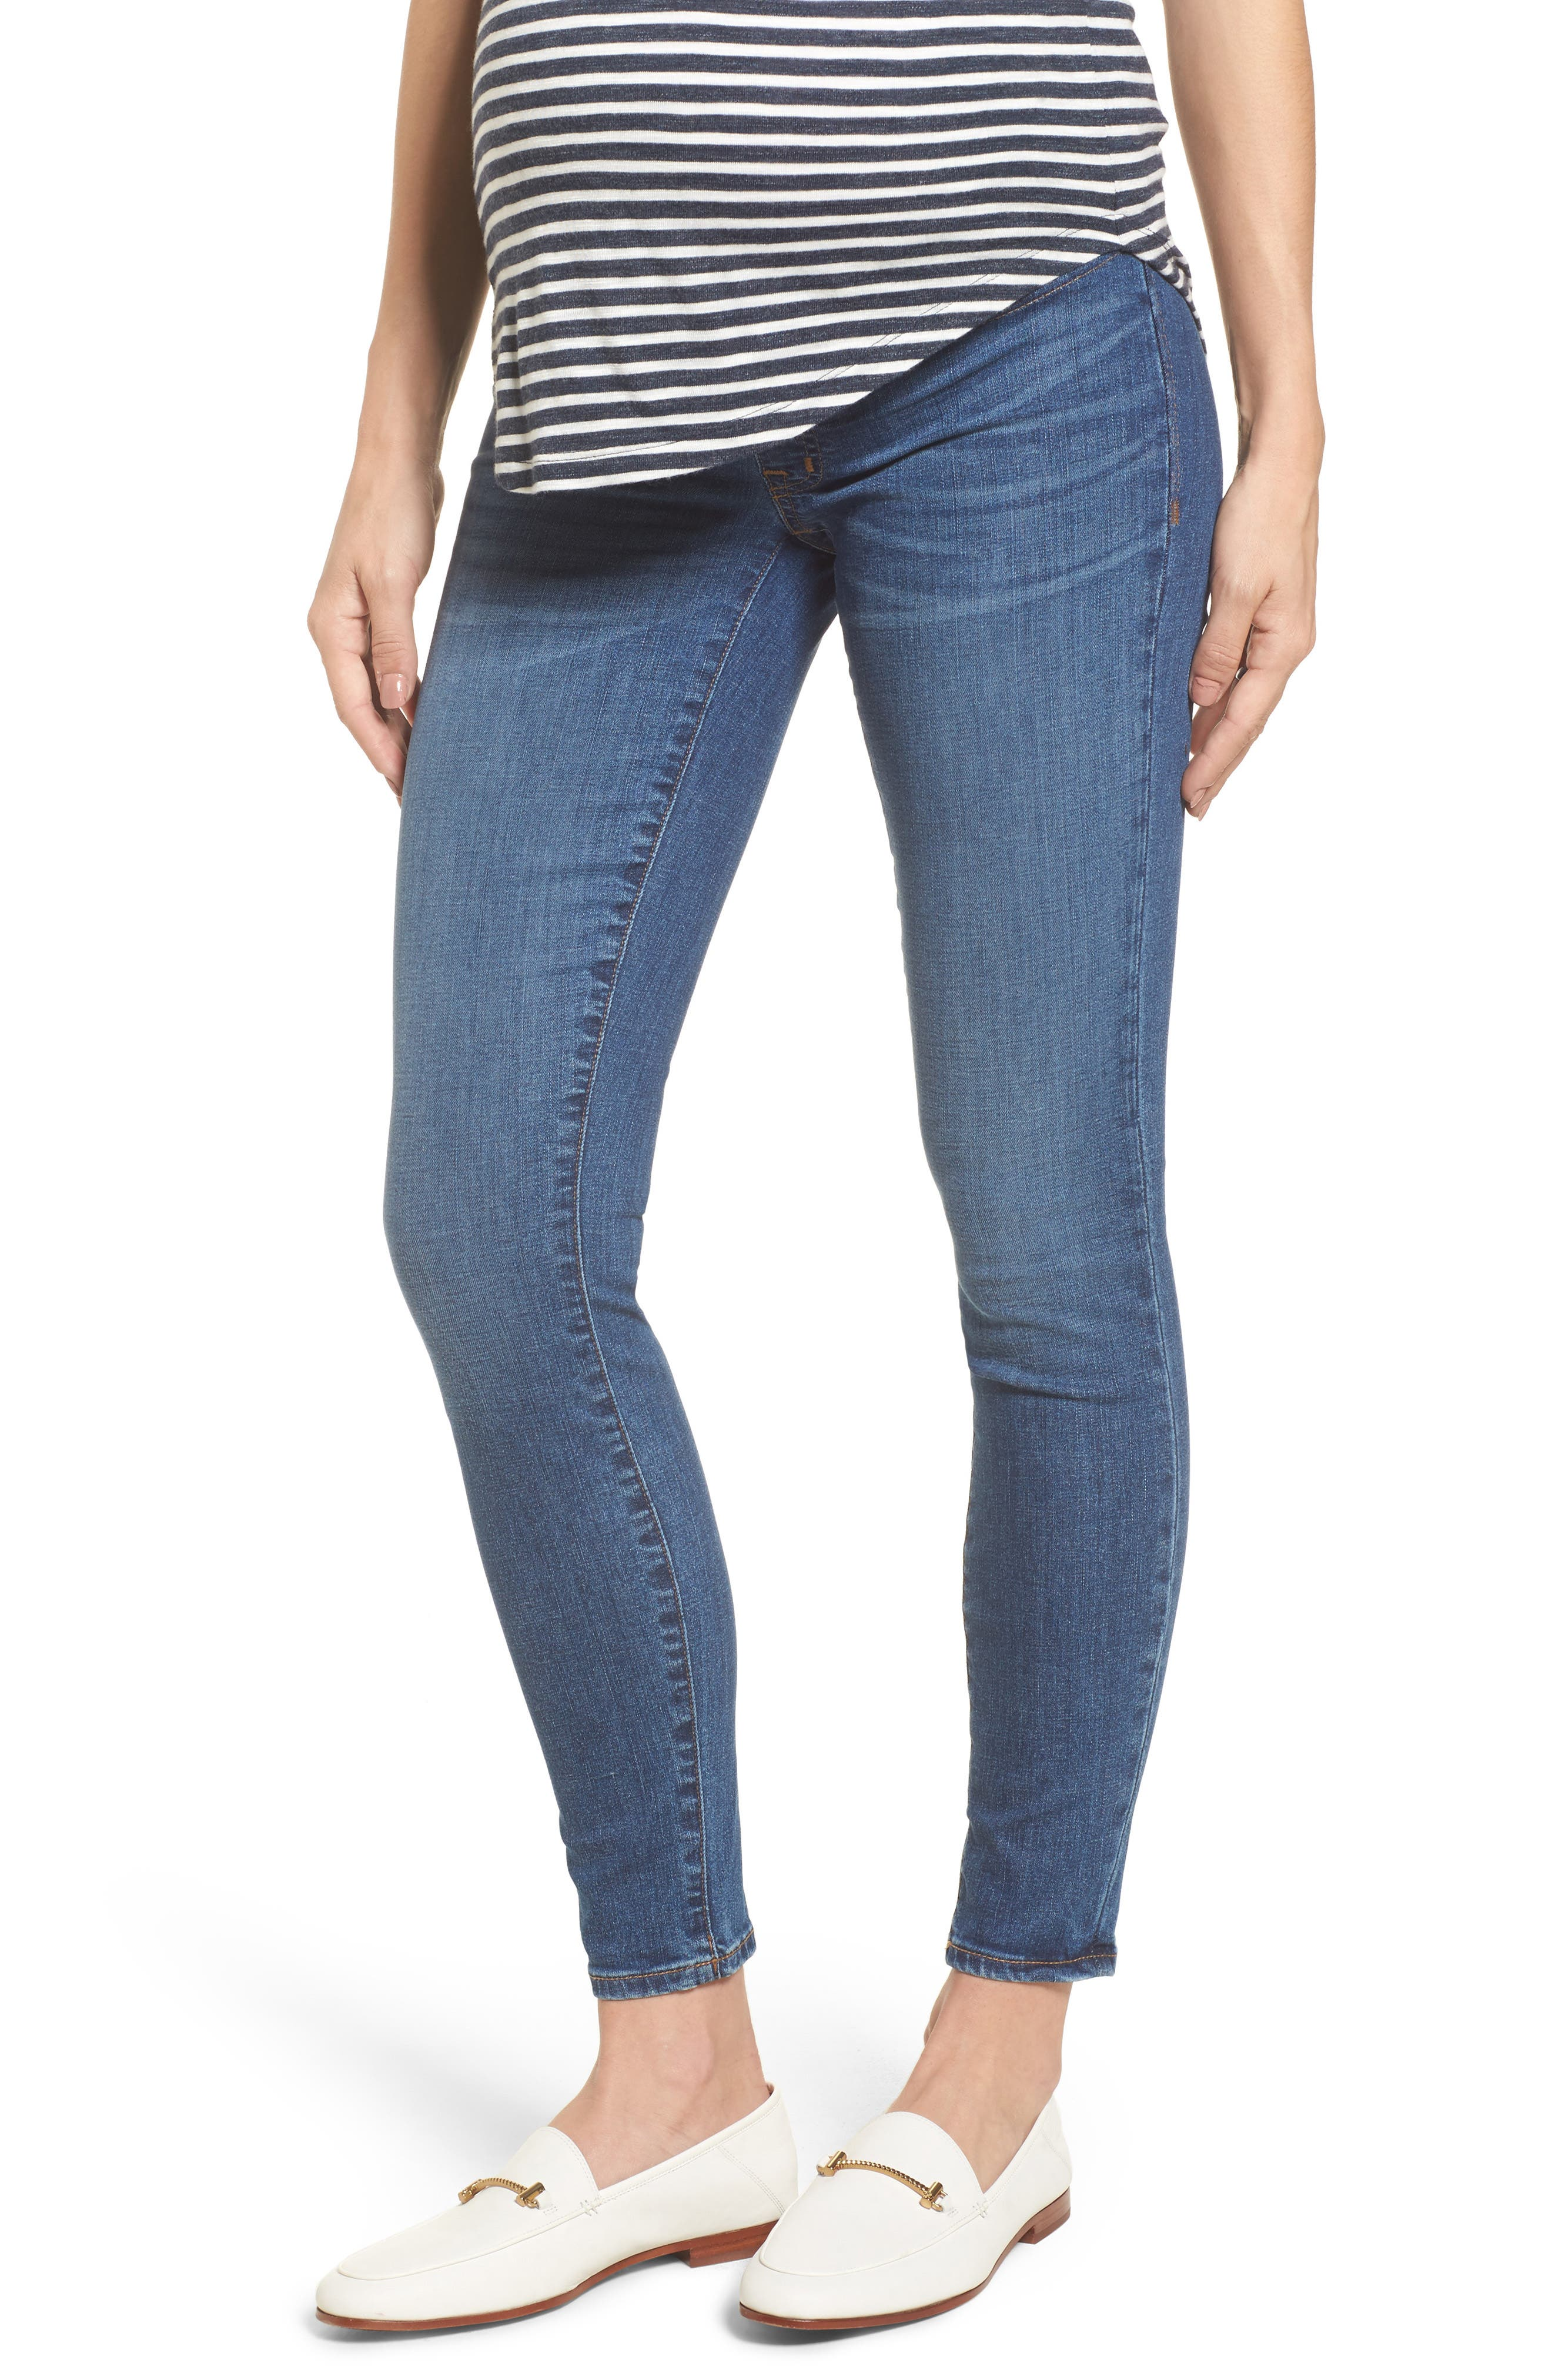 Alternate Image 1 Selected - Madewell Maternity Skinny Jeans (Juliet)